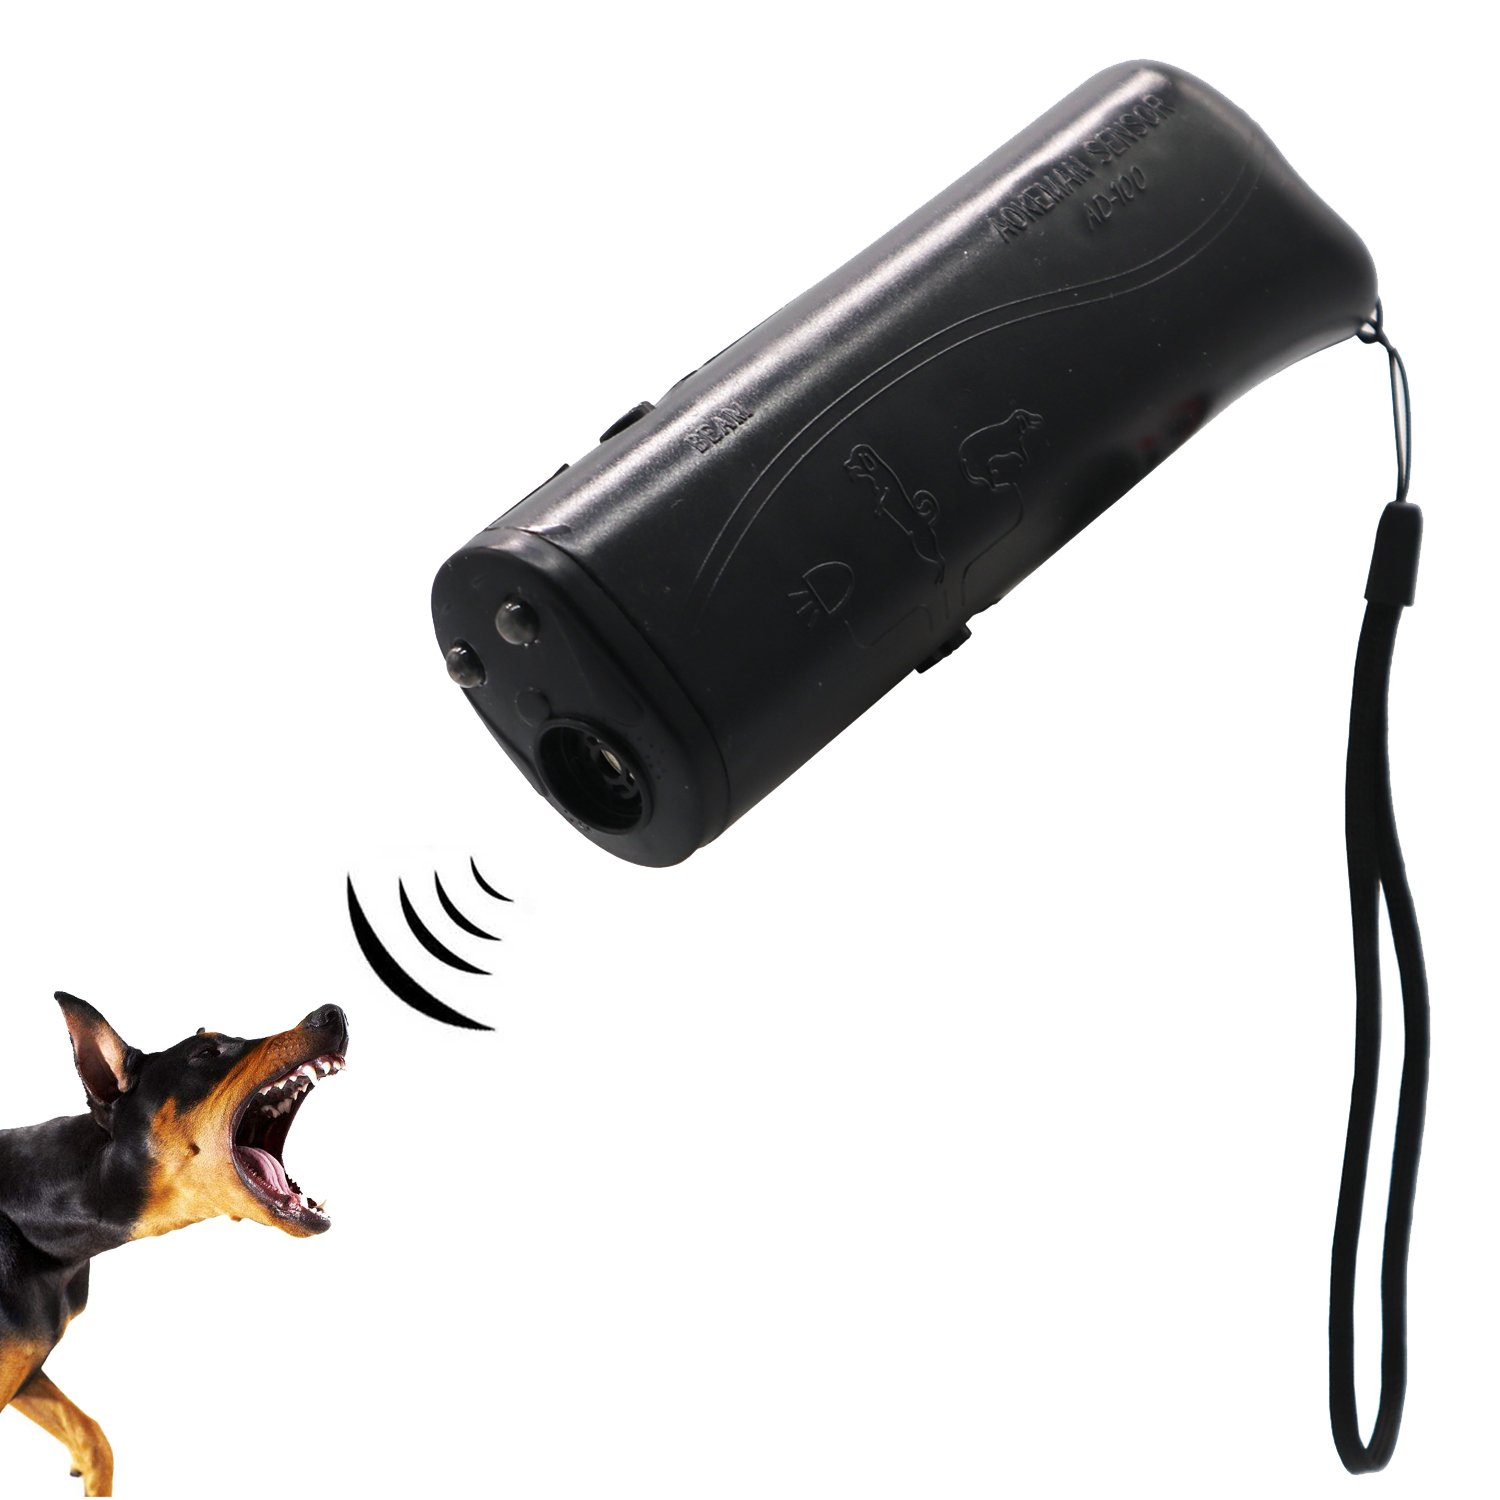 Ruri's Ultrasonic Dog Repeller Trainer Device 3 in 1 Anti Barking Stop Bark Control Trainer LED Flashlight by Ruri's